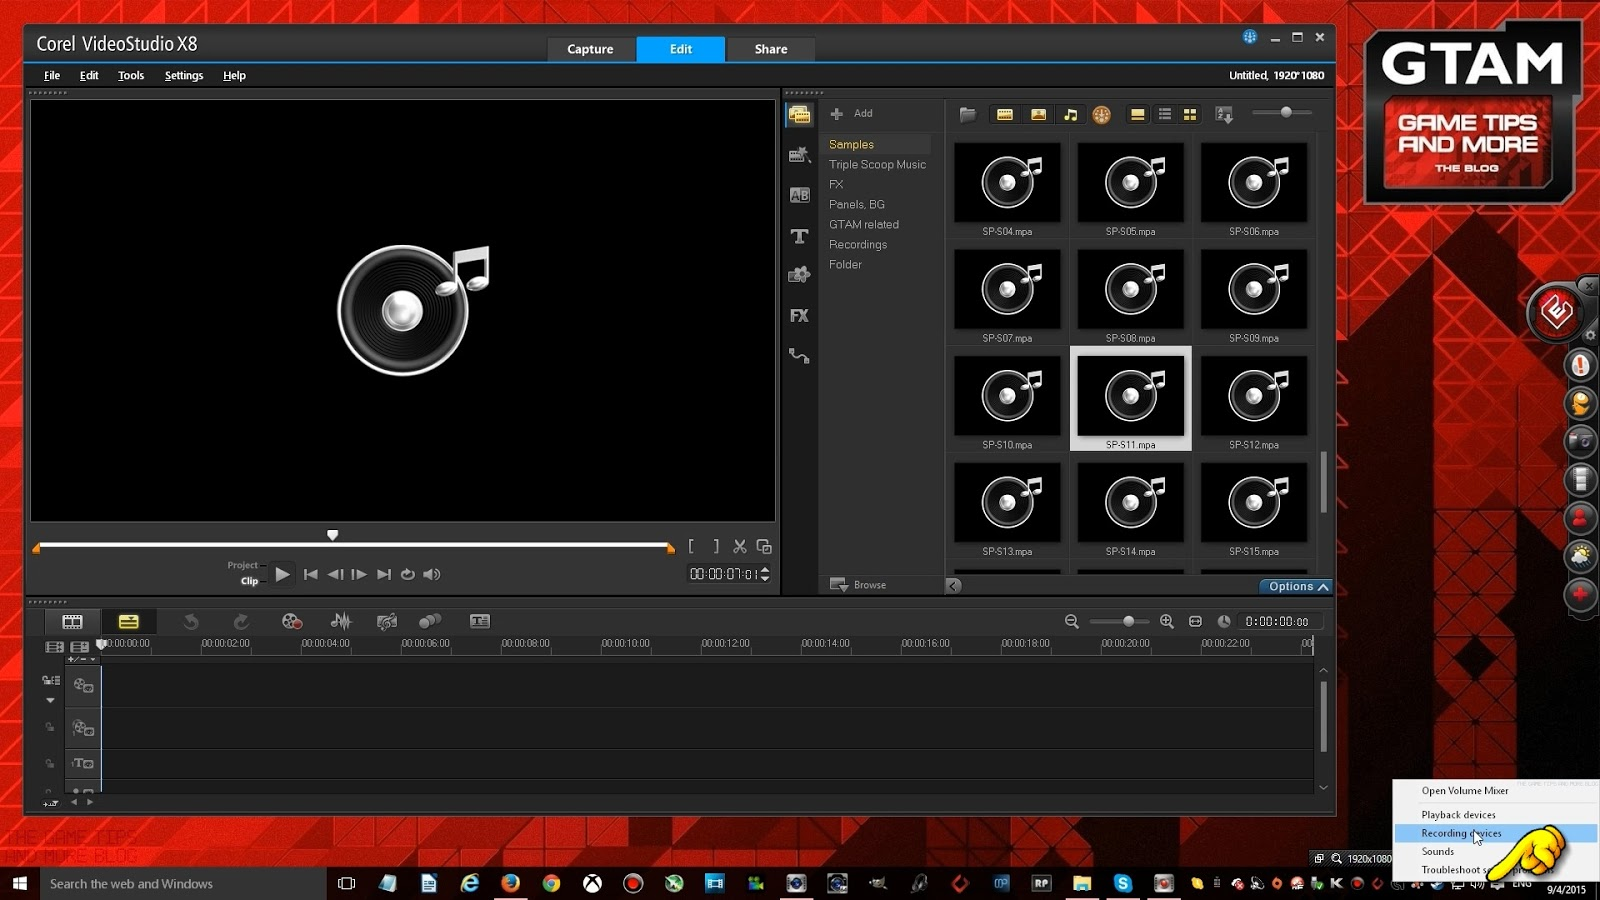 The Game Tips And More Blog: Quick Tip: Corel's ScreenCap